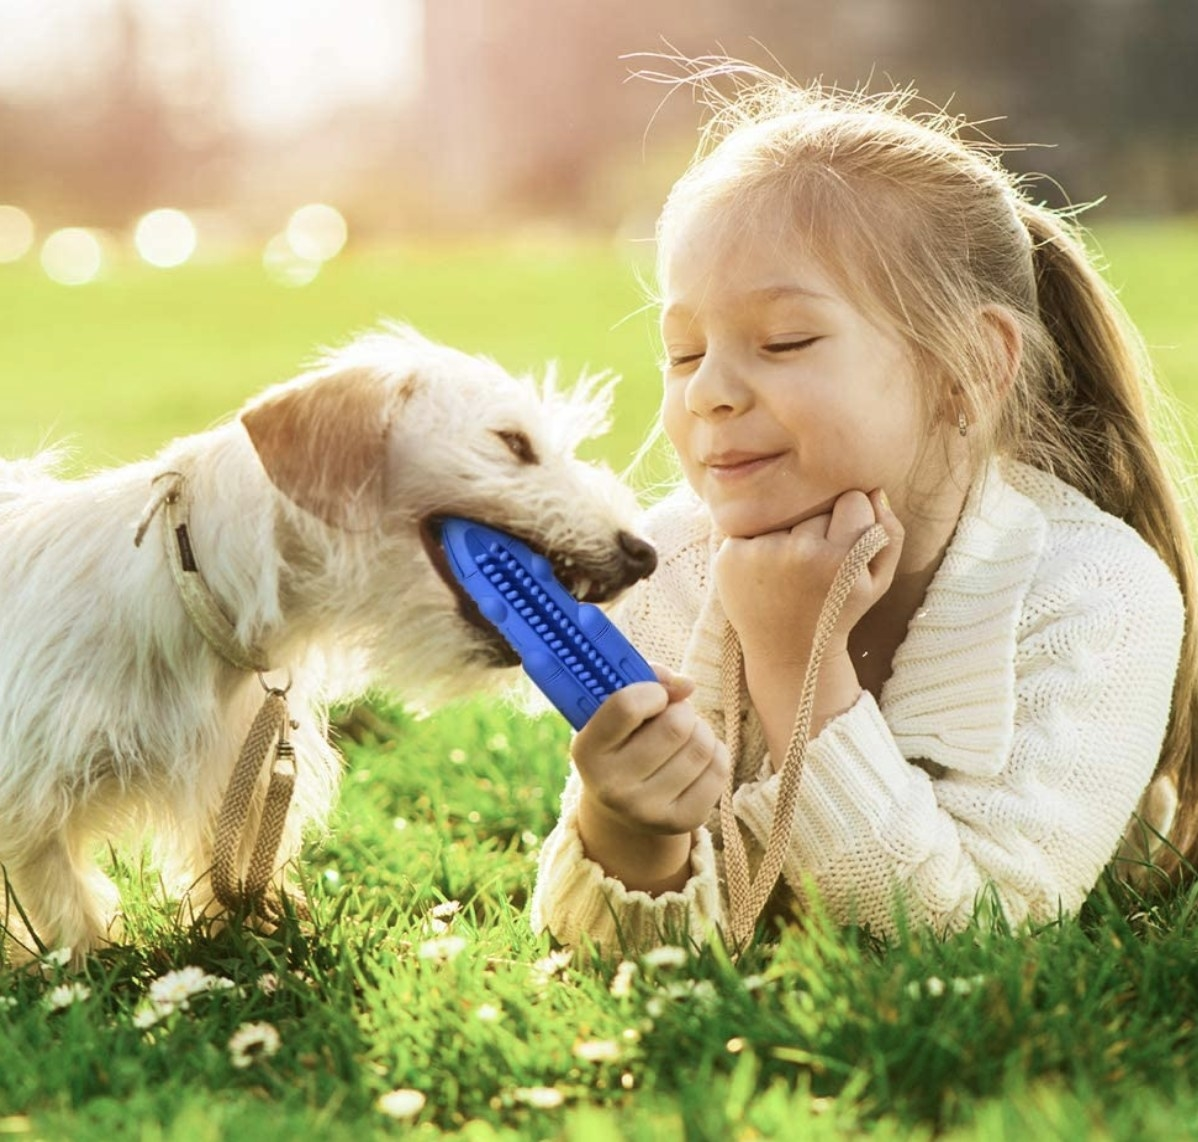 Girl gives dog blue toy